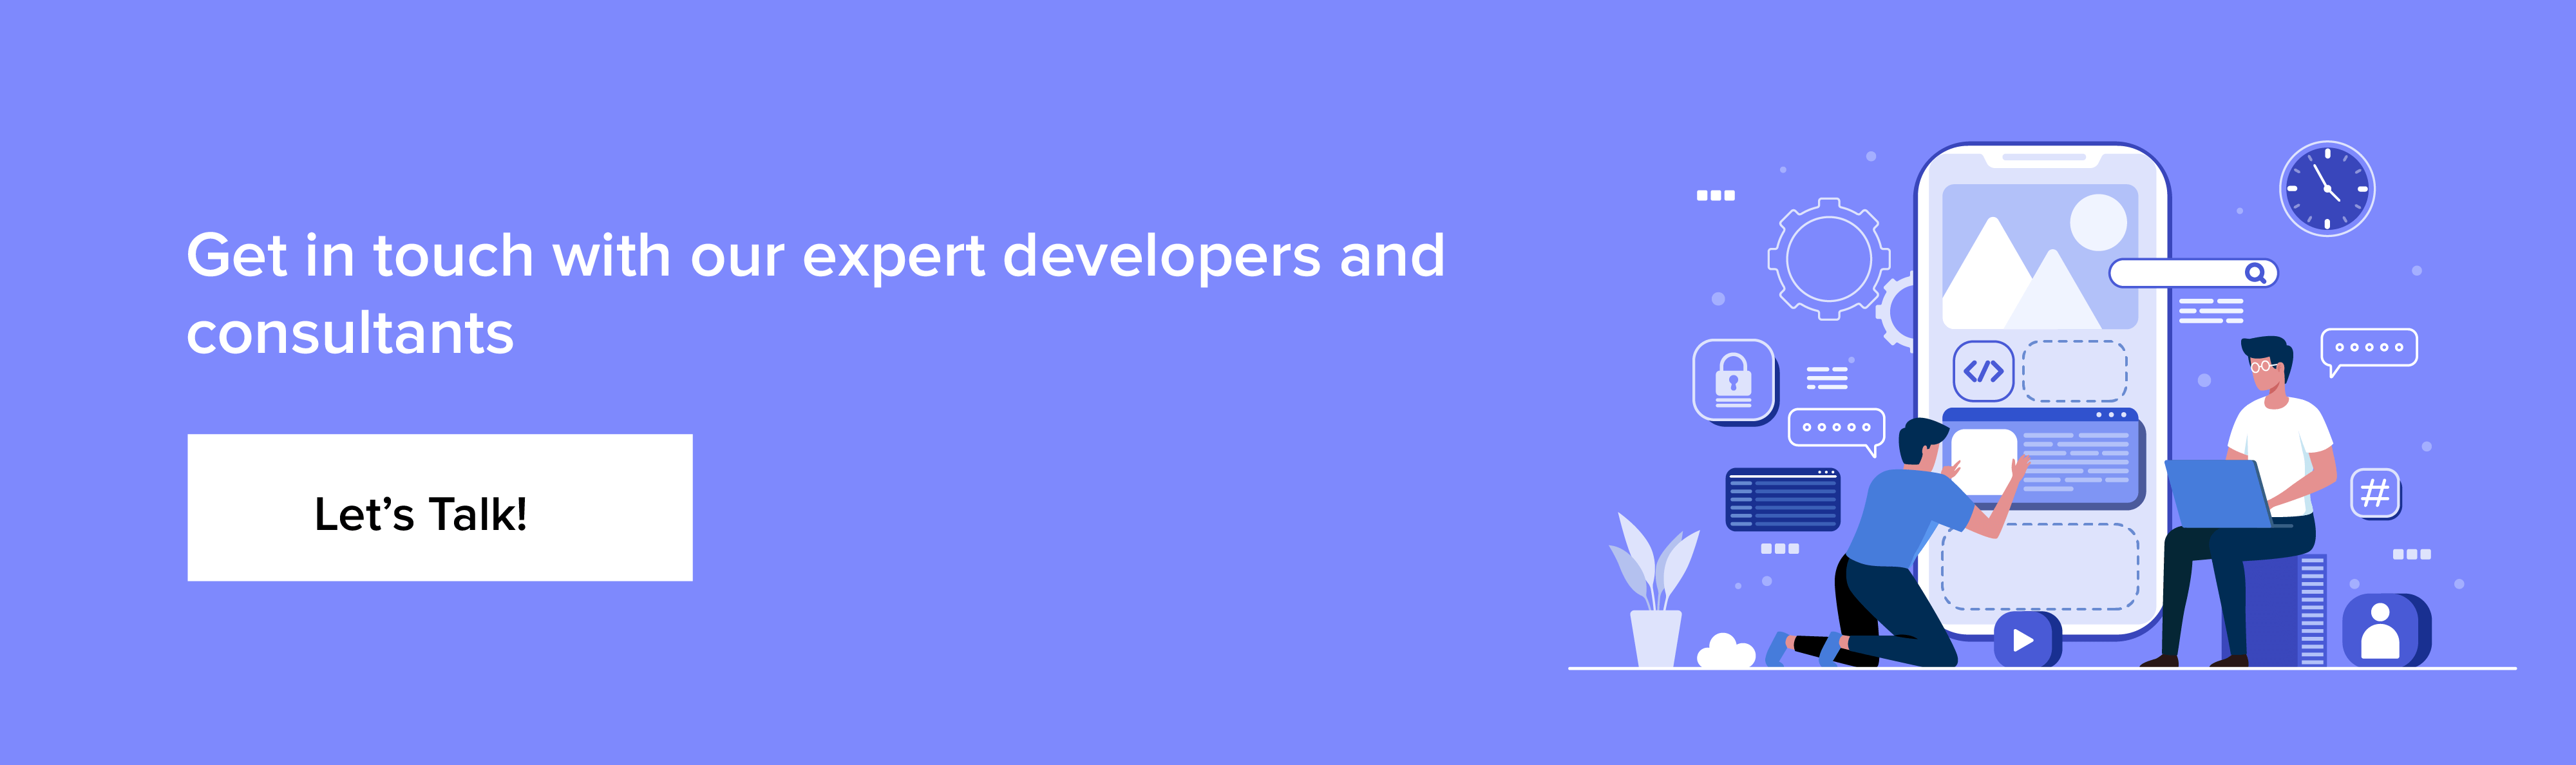 contact our expert developers